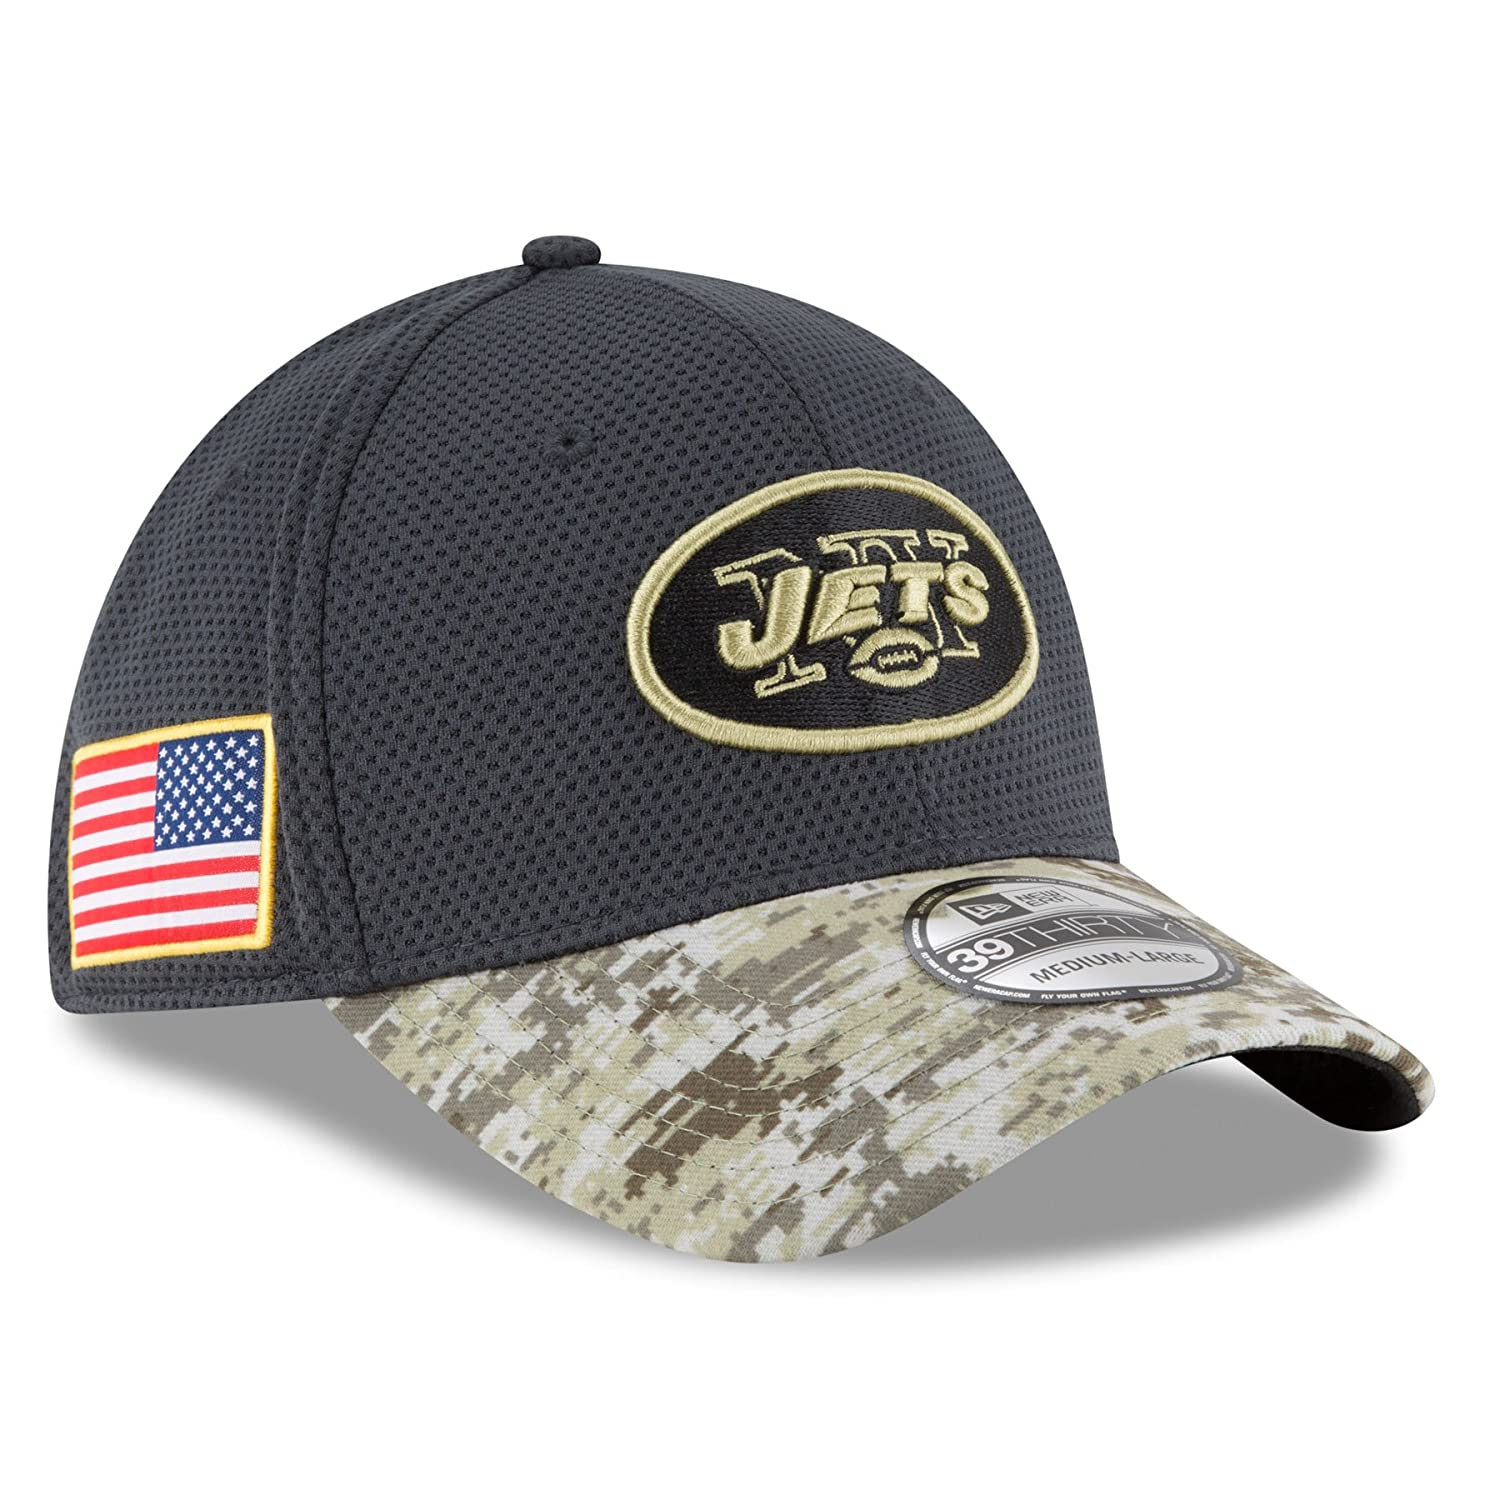 f0946d291d364c New Era Men's NFL New York Jets 16 Salute to Service Sideline Hat at Amazon  Men's Clothing store: